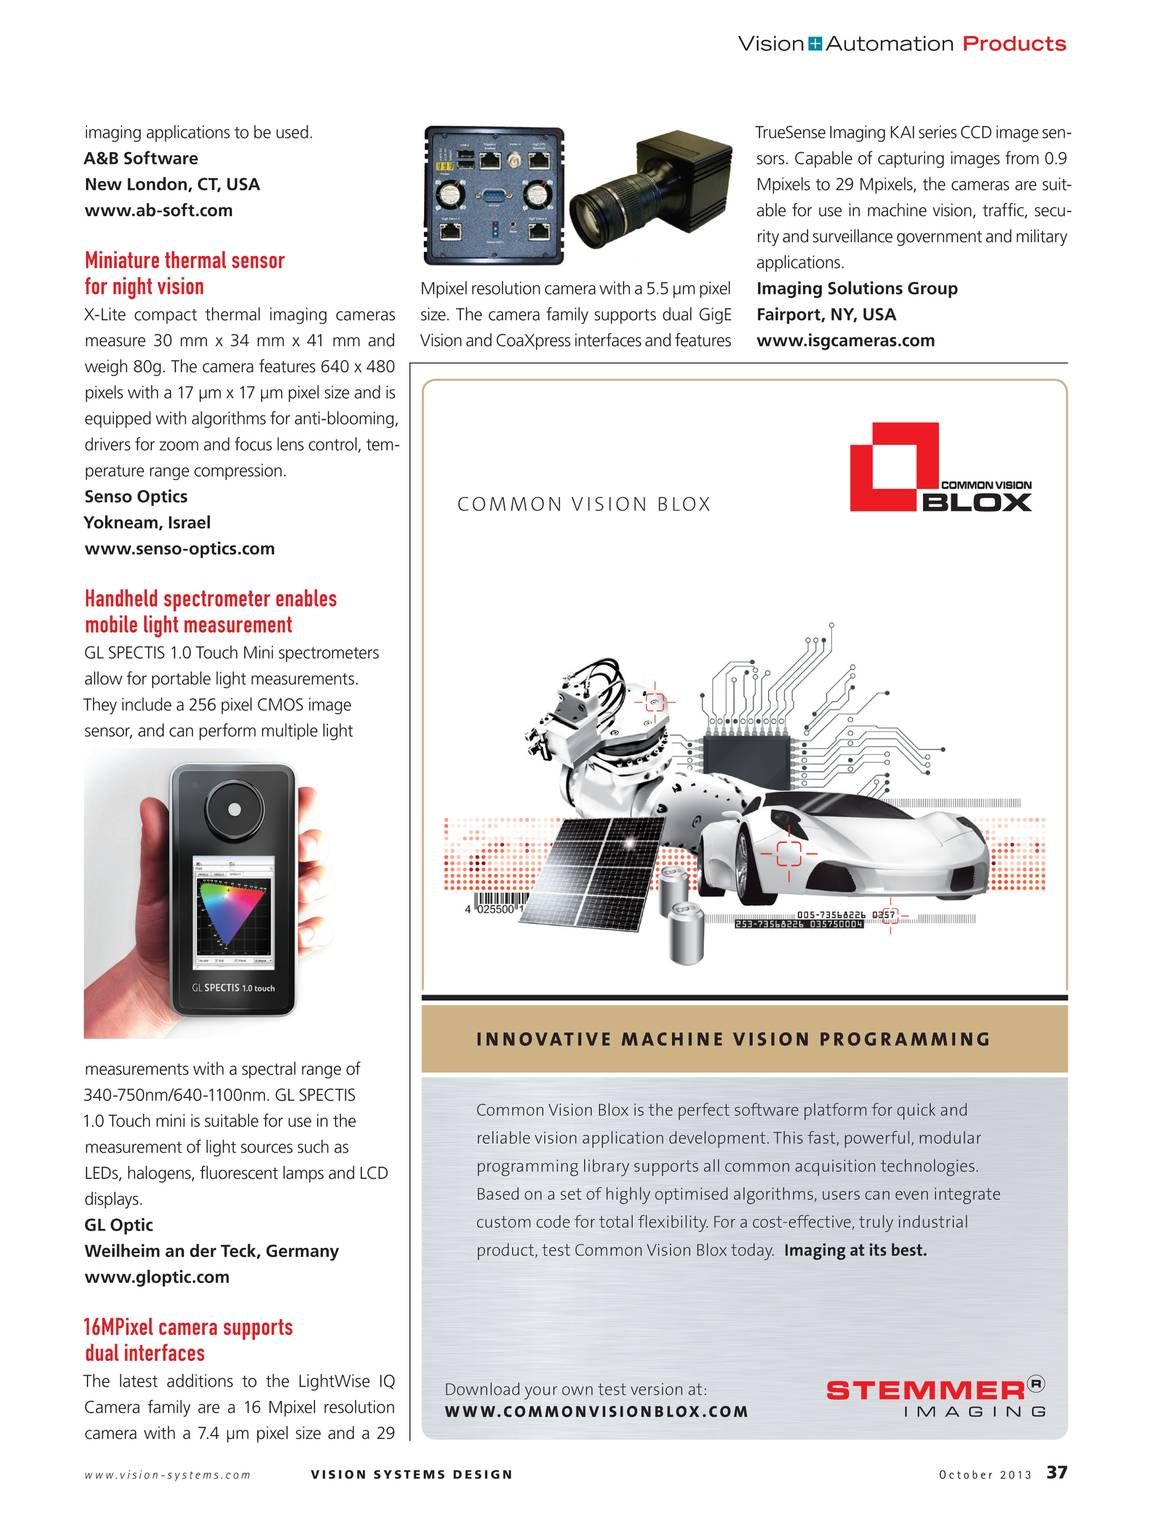 Vision Systems - October 2013 - page 38